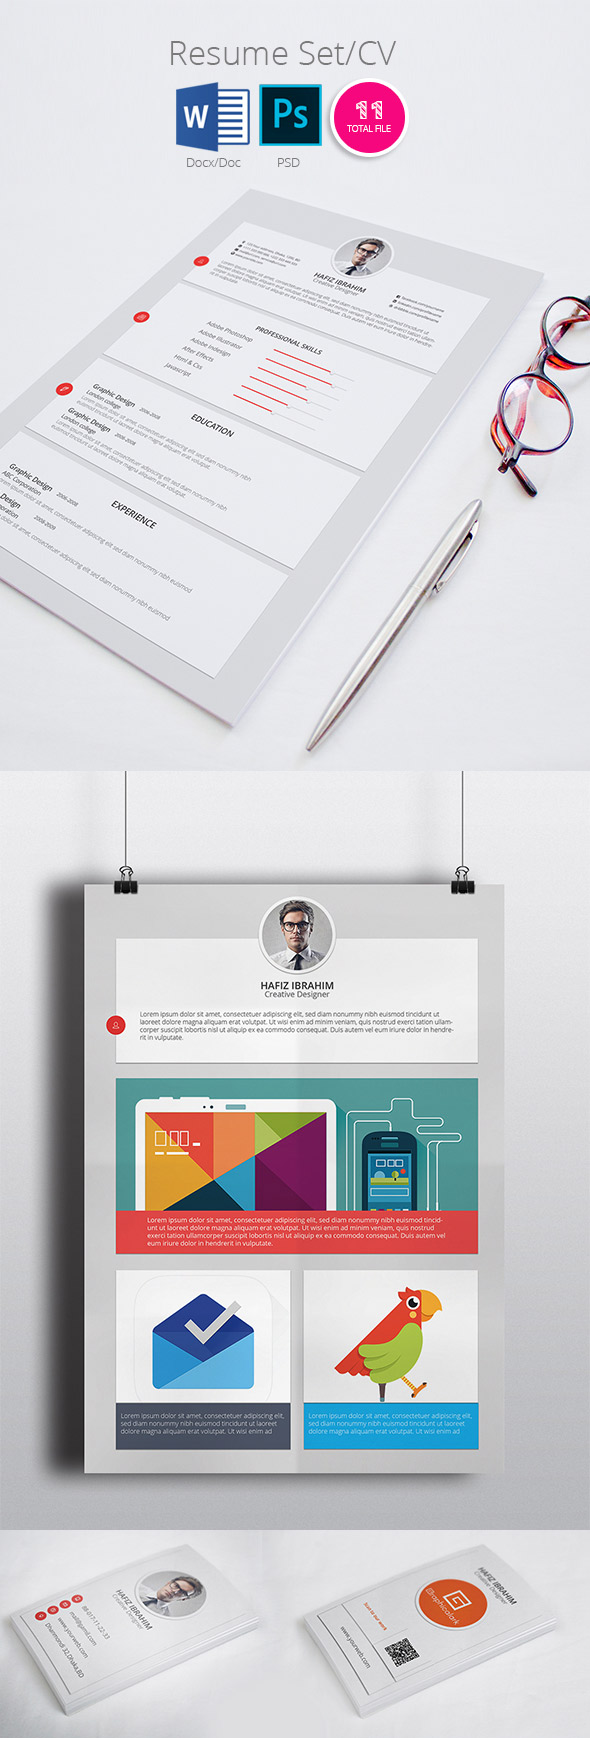 25 creative resume templates to land a new job in style modern resume cv template design